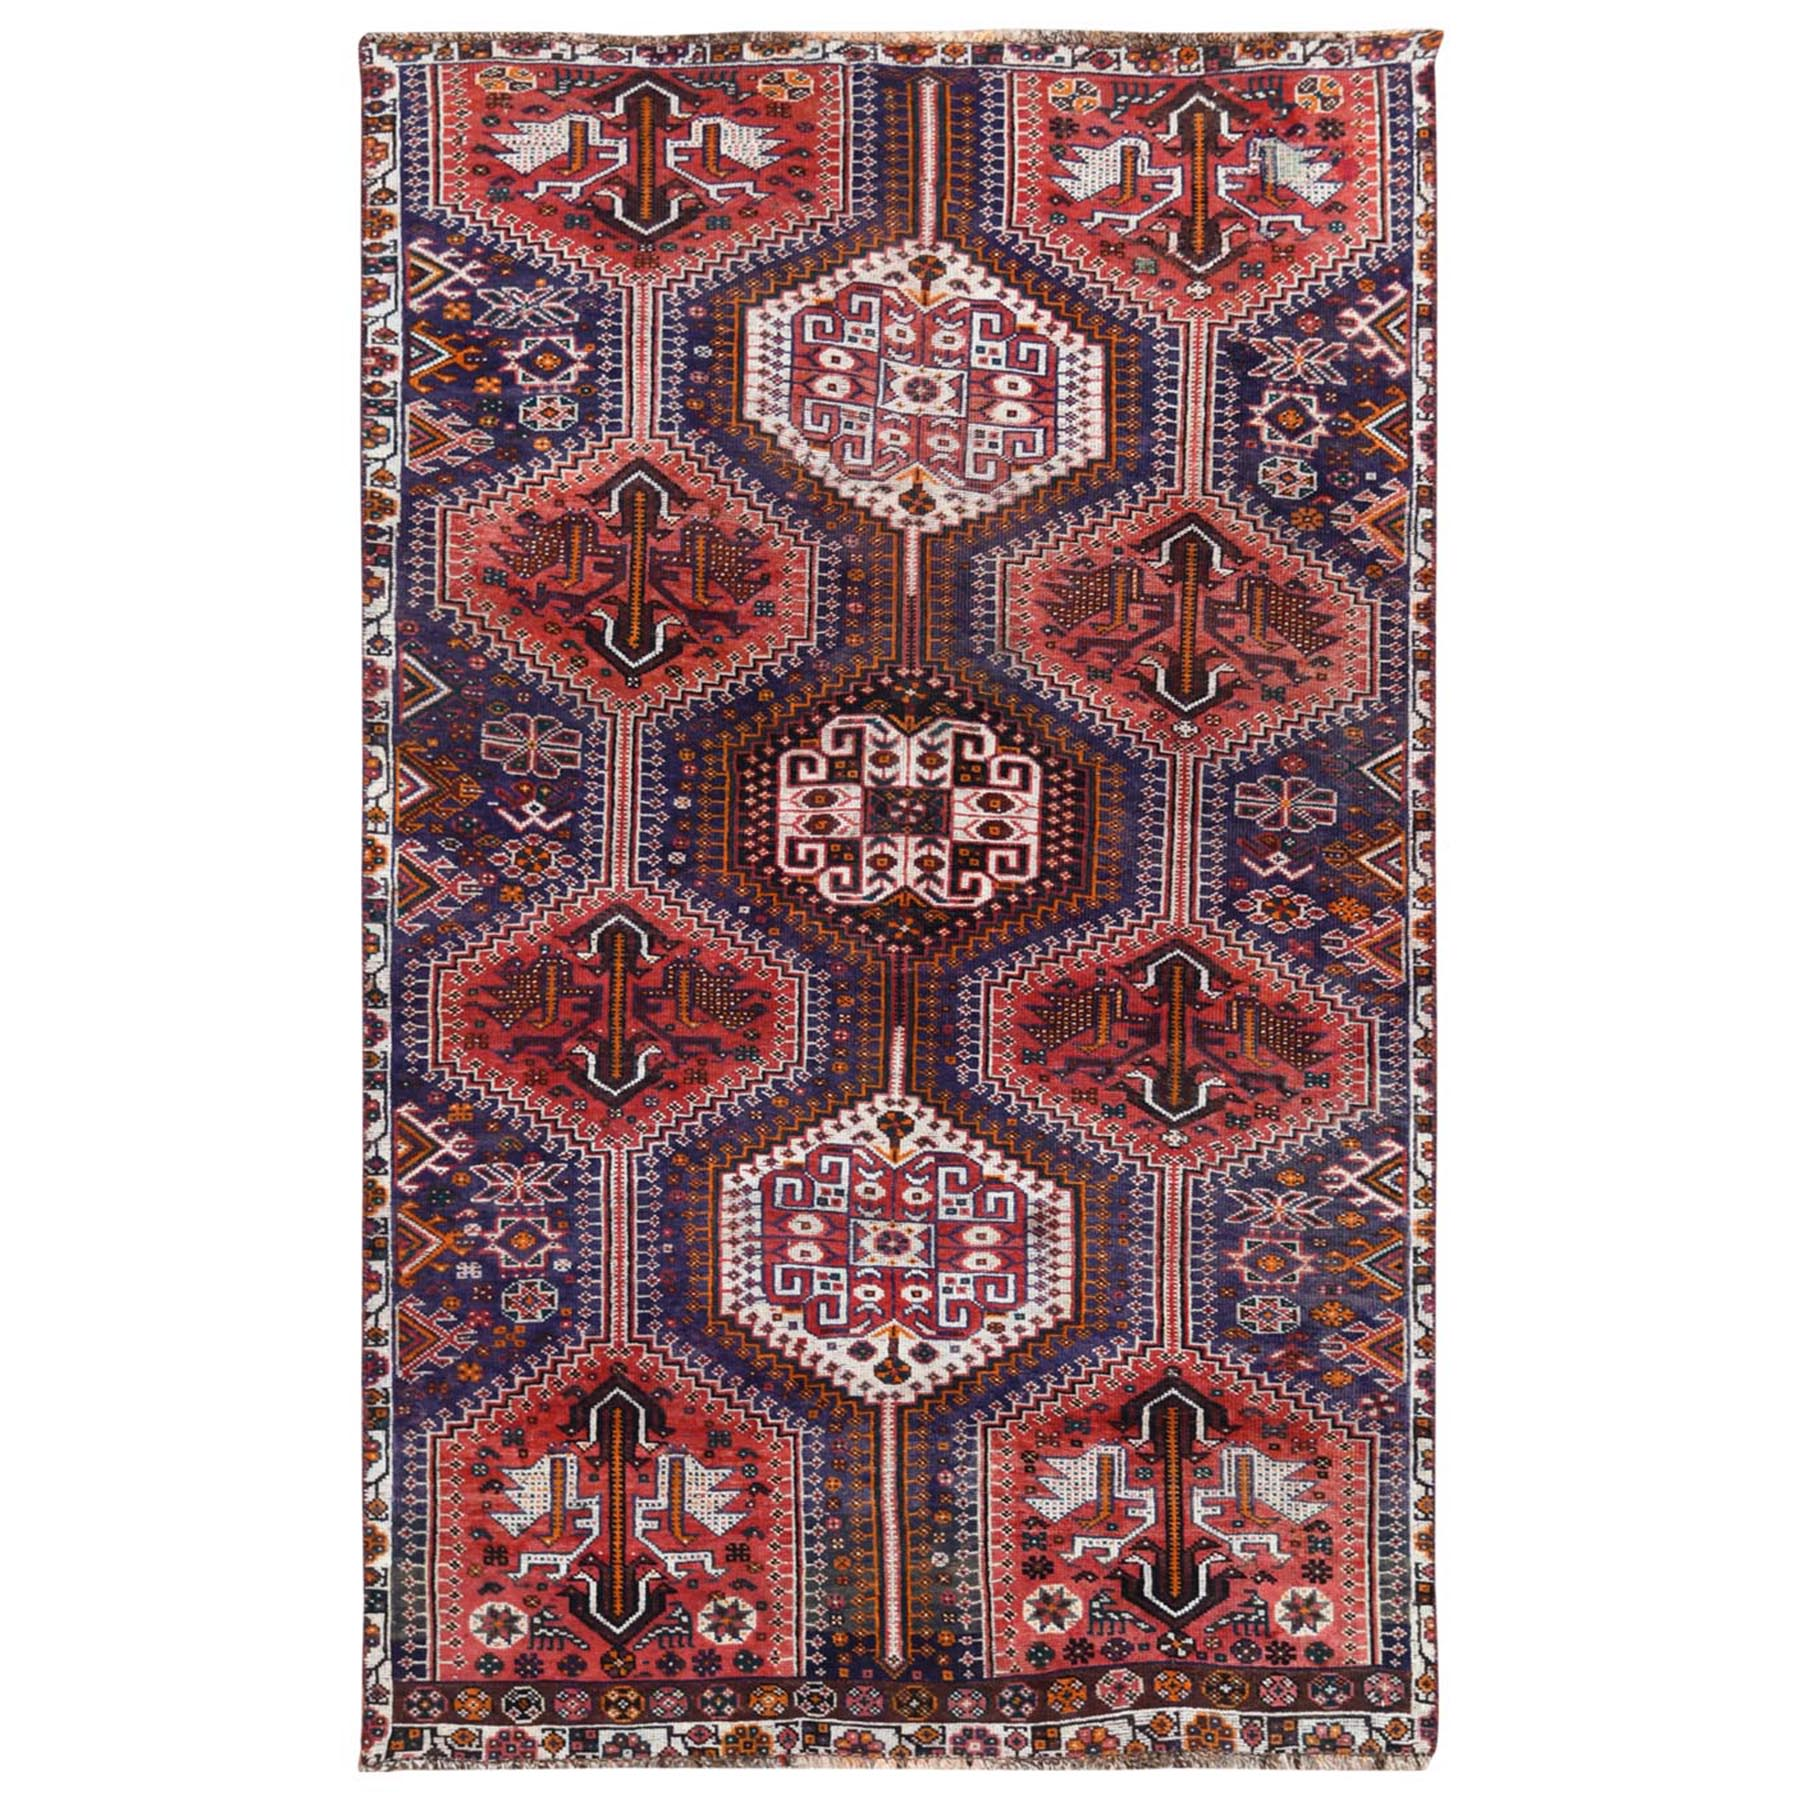 "4'6""x7'2"" Red Hand Knotted Persian Qashqai Vintage Worn Down Bohemian Clean Organic Wool Oriental Rug"